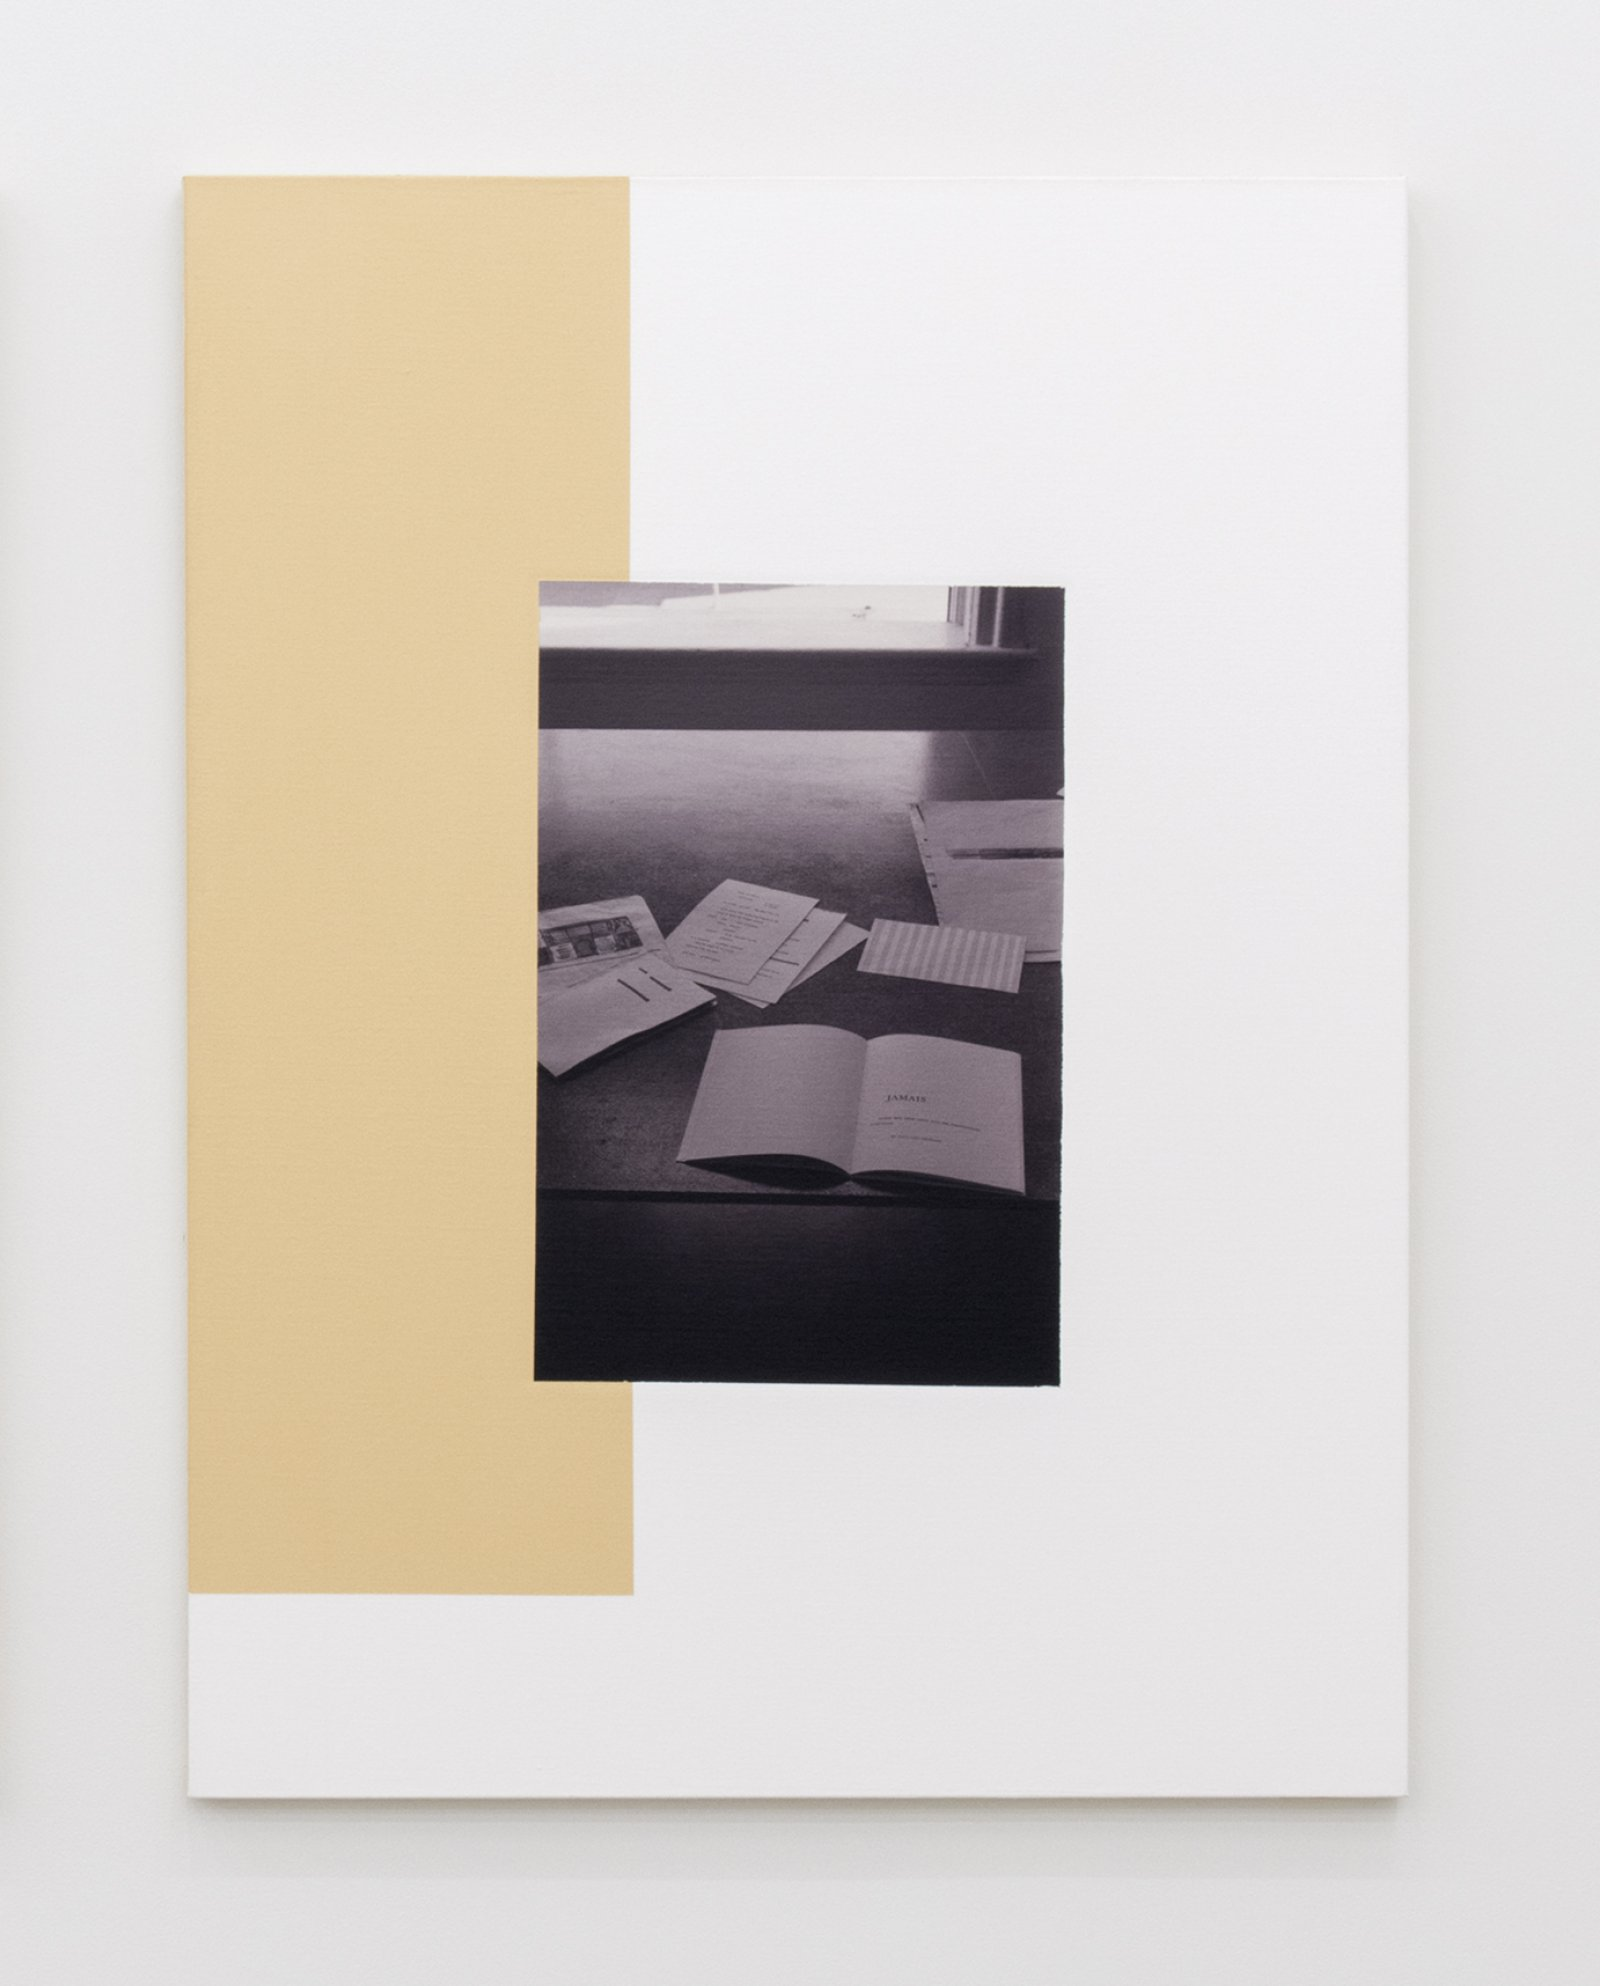 Ian Wallace, The Table (Image/Text) I, II (detail), 1979–2007, photolaminate and acrylic on canvas, 48 x 72 in. (122 x 183 cm) by Ian Wallace